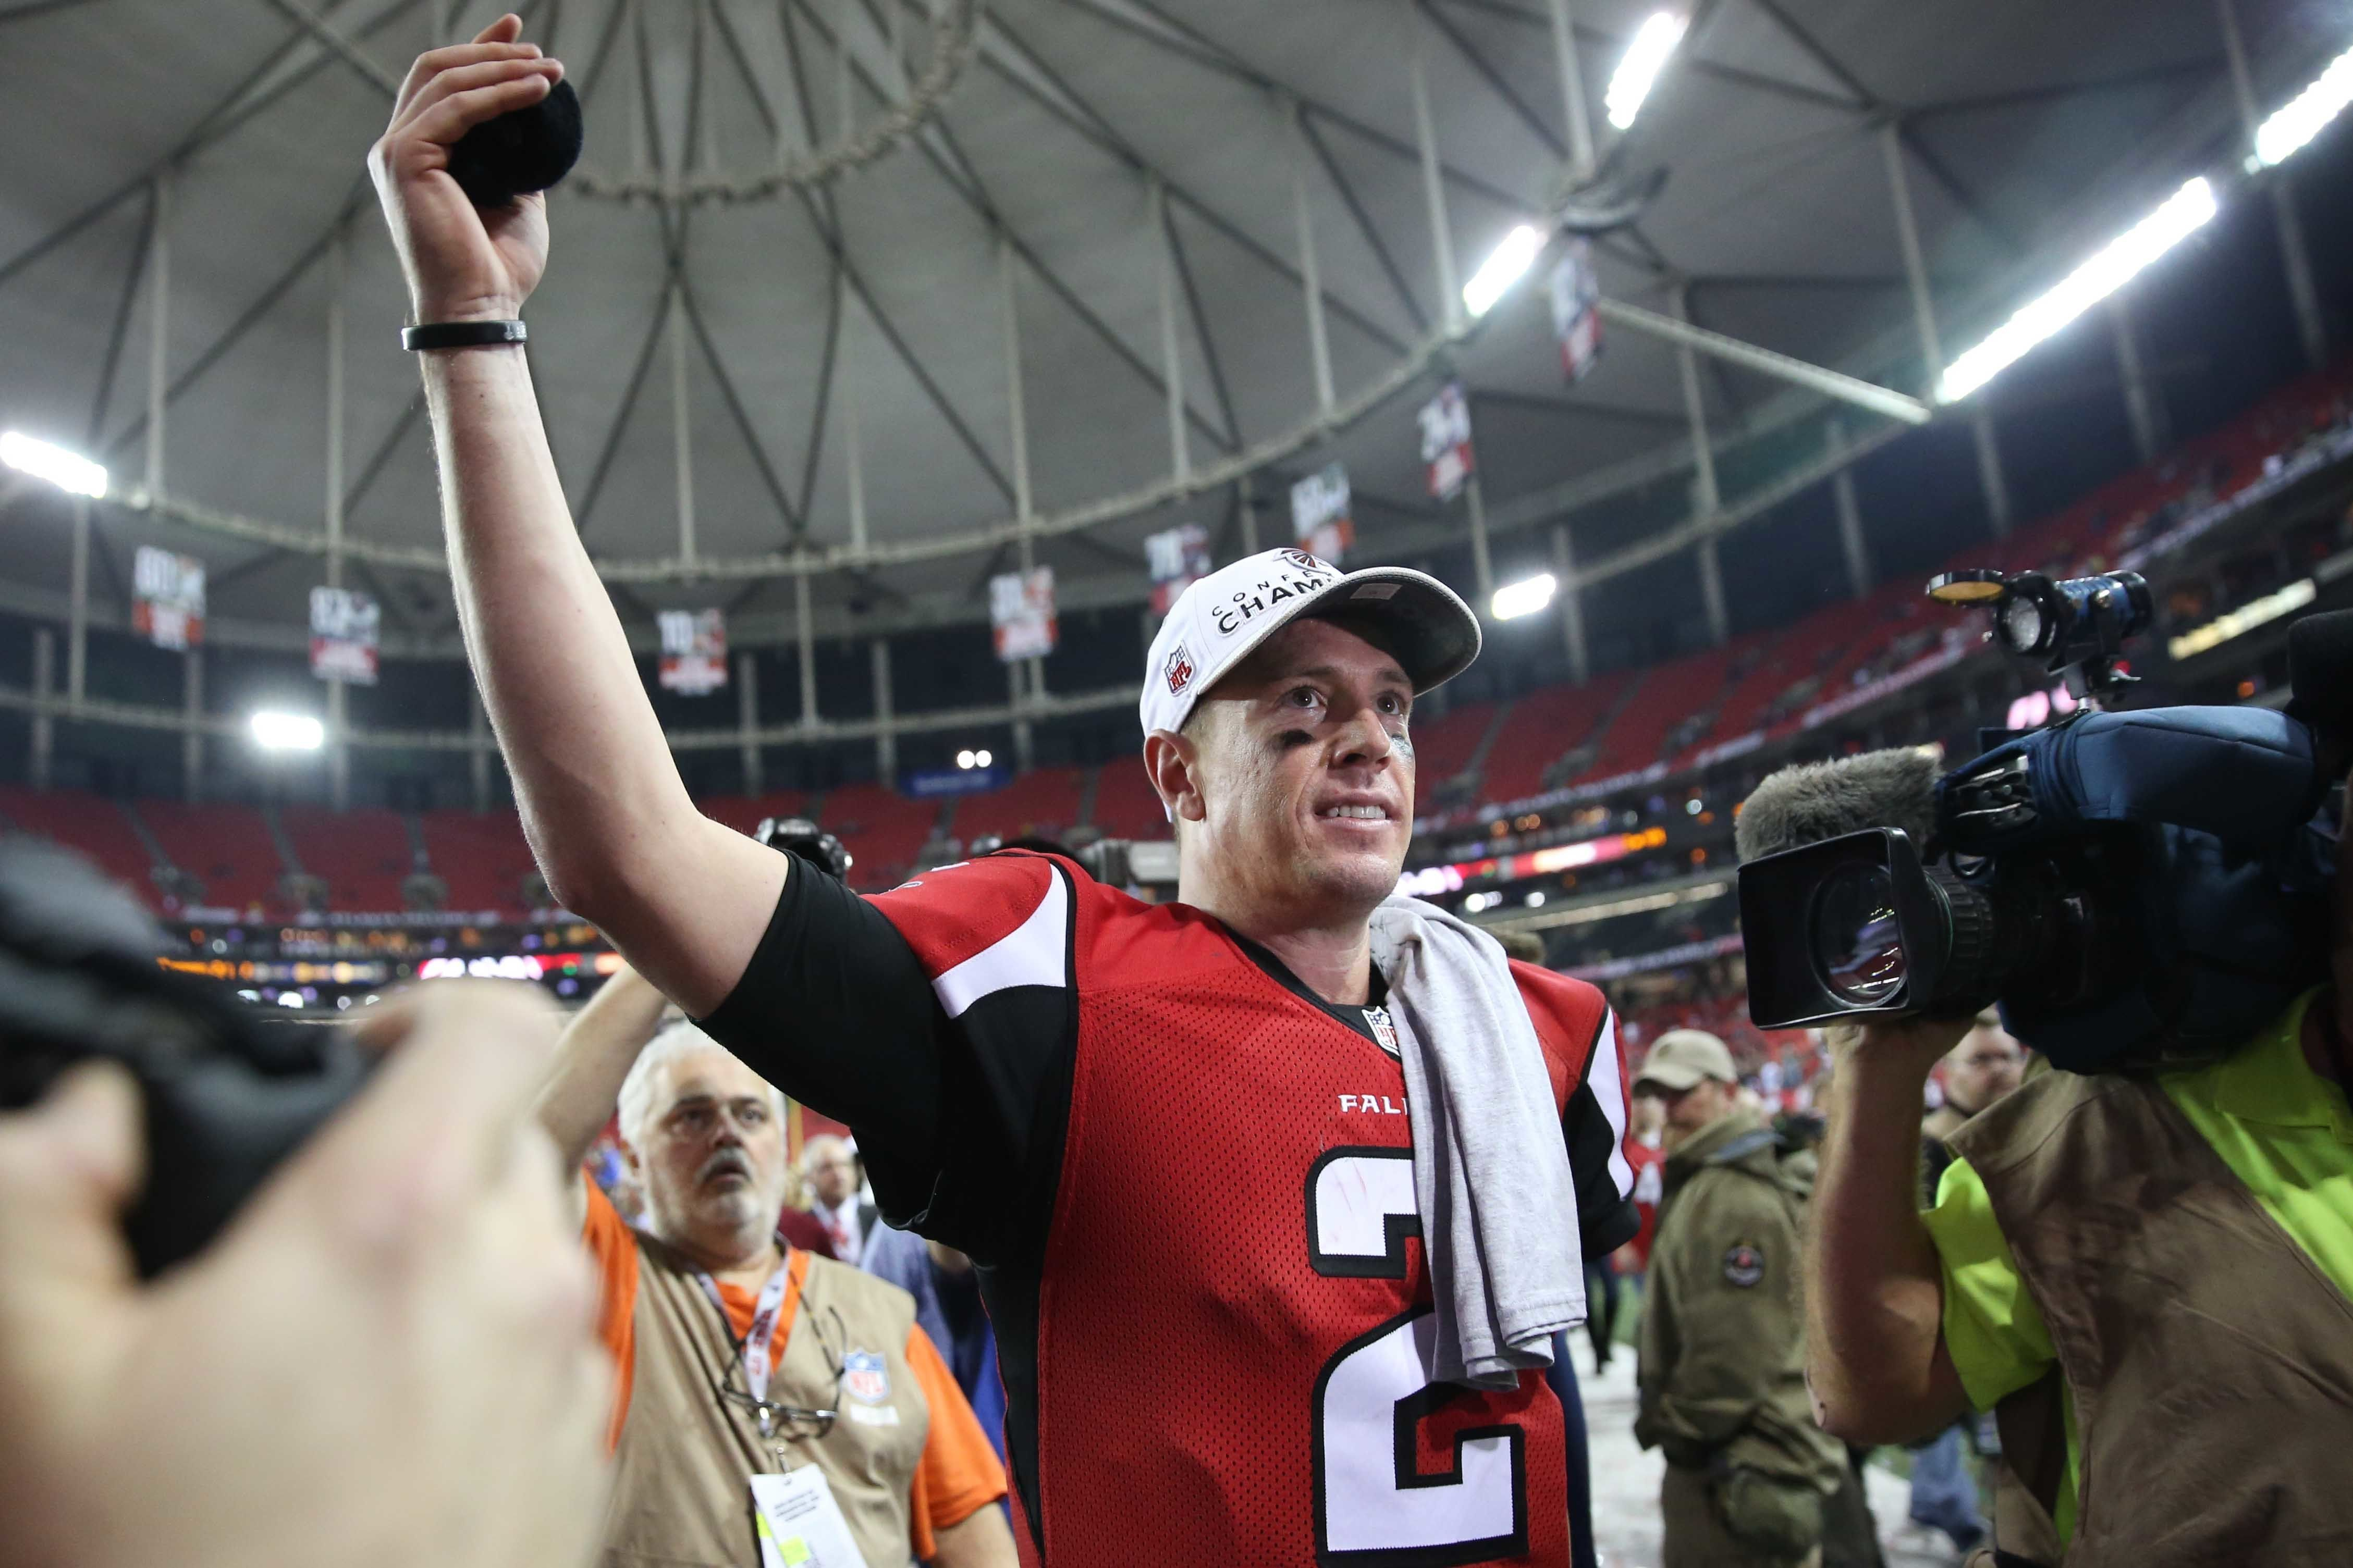 Jan 22, 2017; Atlanta, GA, USA; Atlanta Falcons quarterback Matt Ryan (2) walks off the field after the game against the Green Bay Packers in the 2017 NFC Championship Game at the Georgia Dome. Atlanta defeated Green Bay 44-21.  Mandatory Credit: Jason Getz-USA TODAY Sports